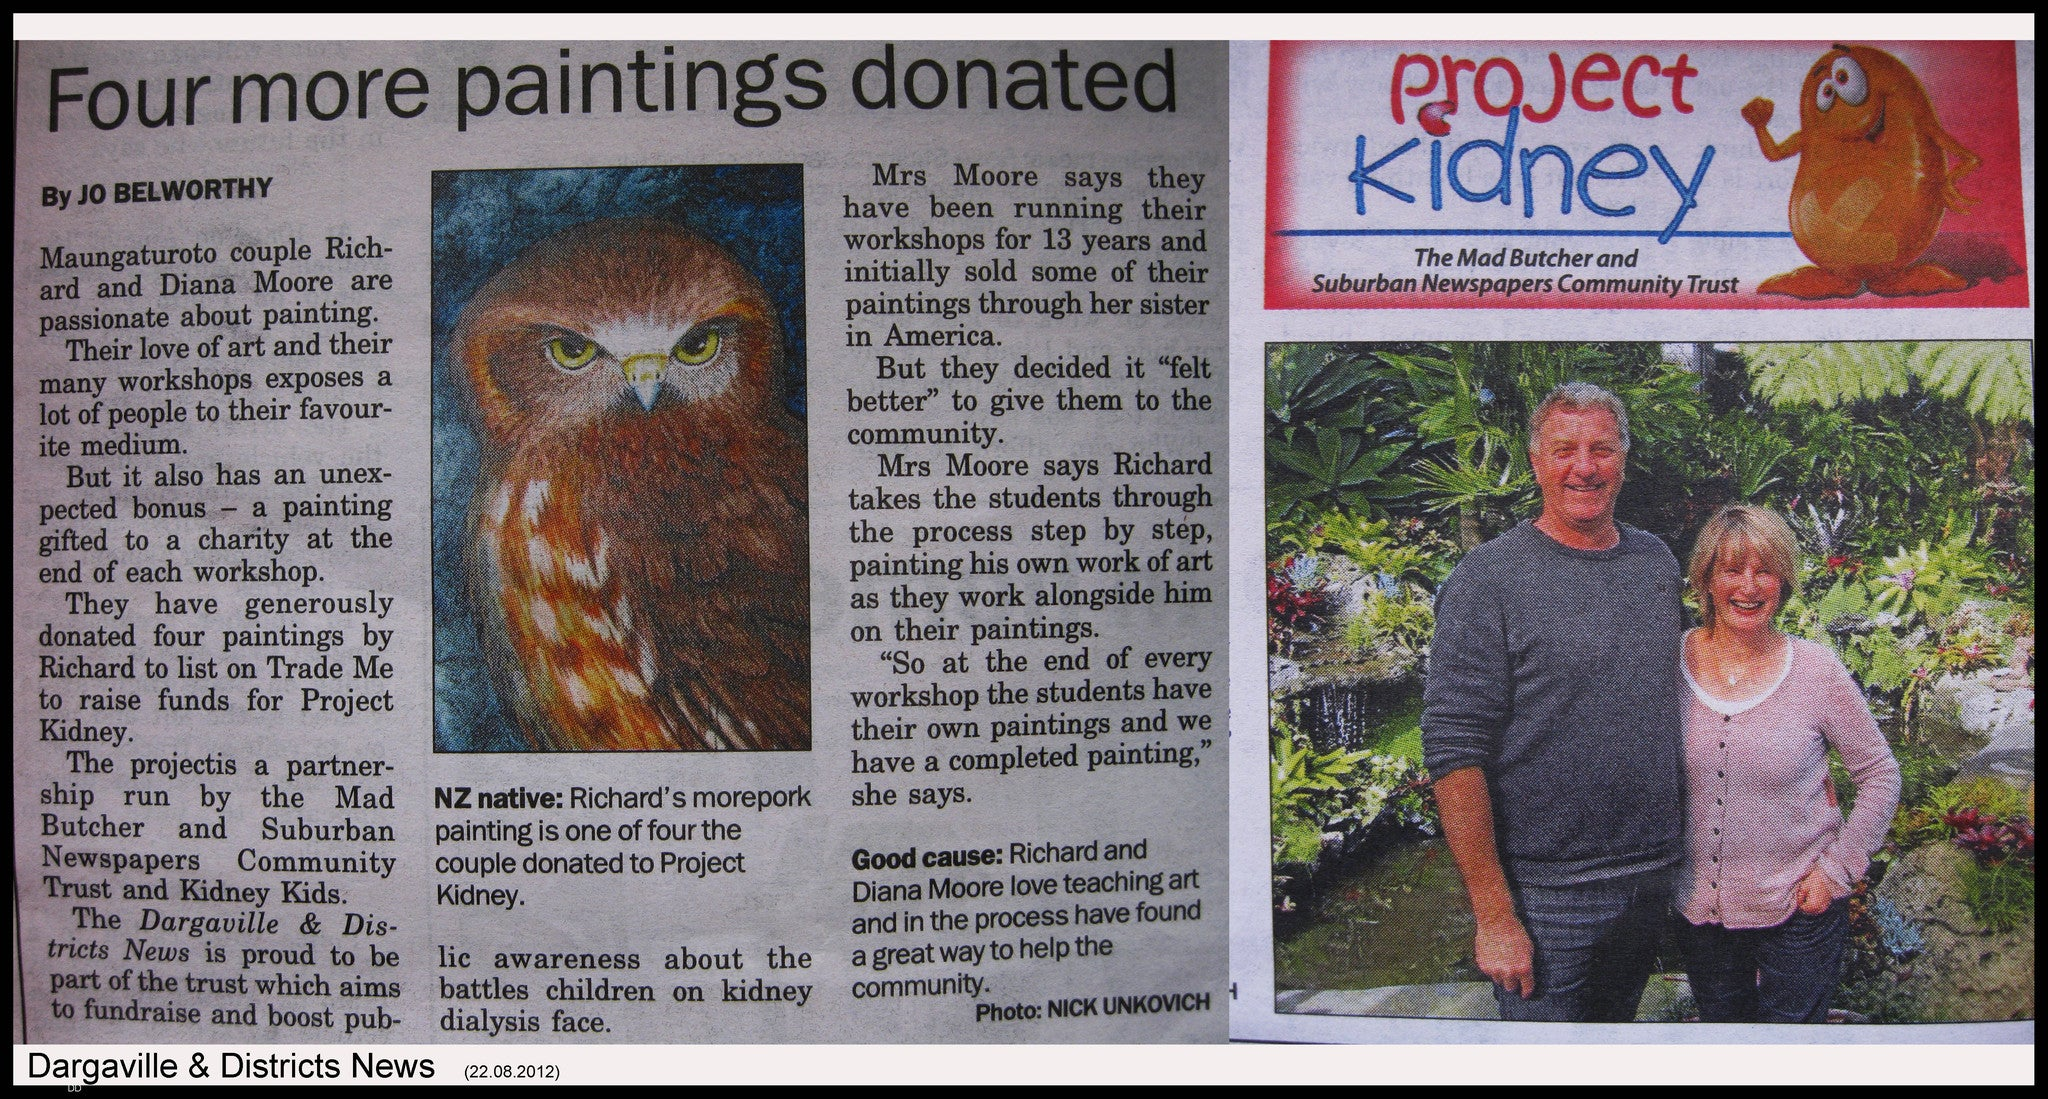 DARGAVILLE & DISTRICTS NEWS 22nd August 2012